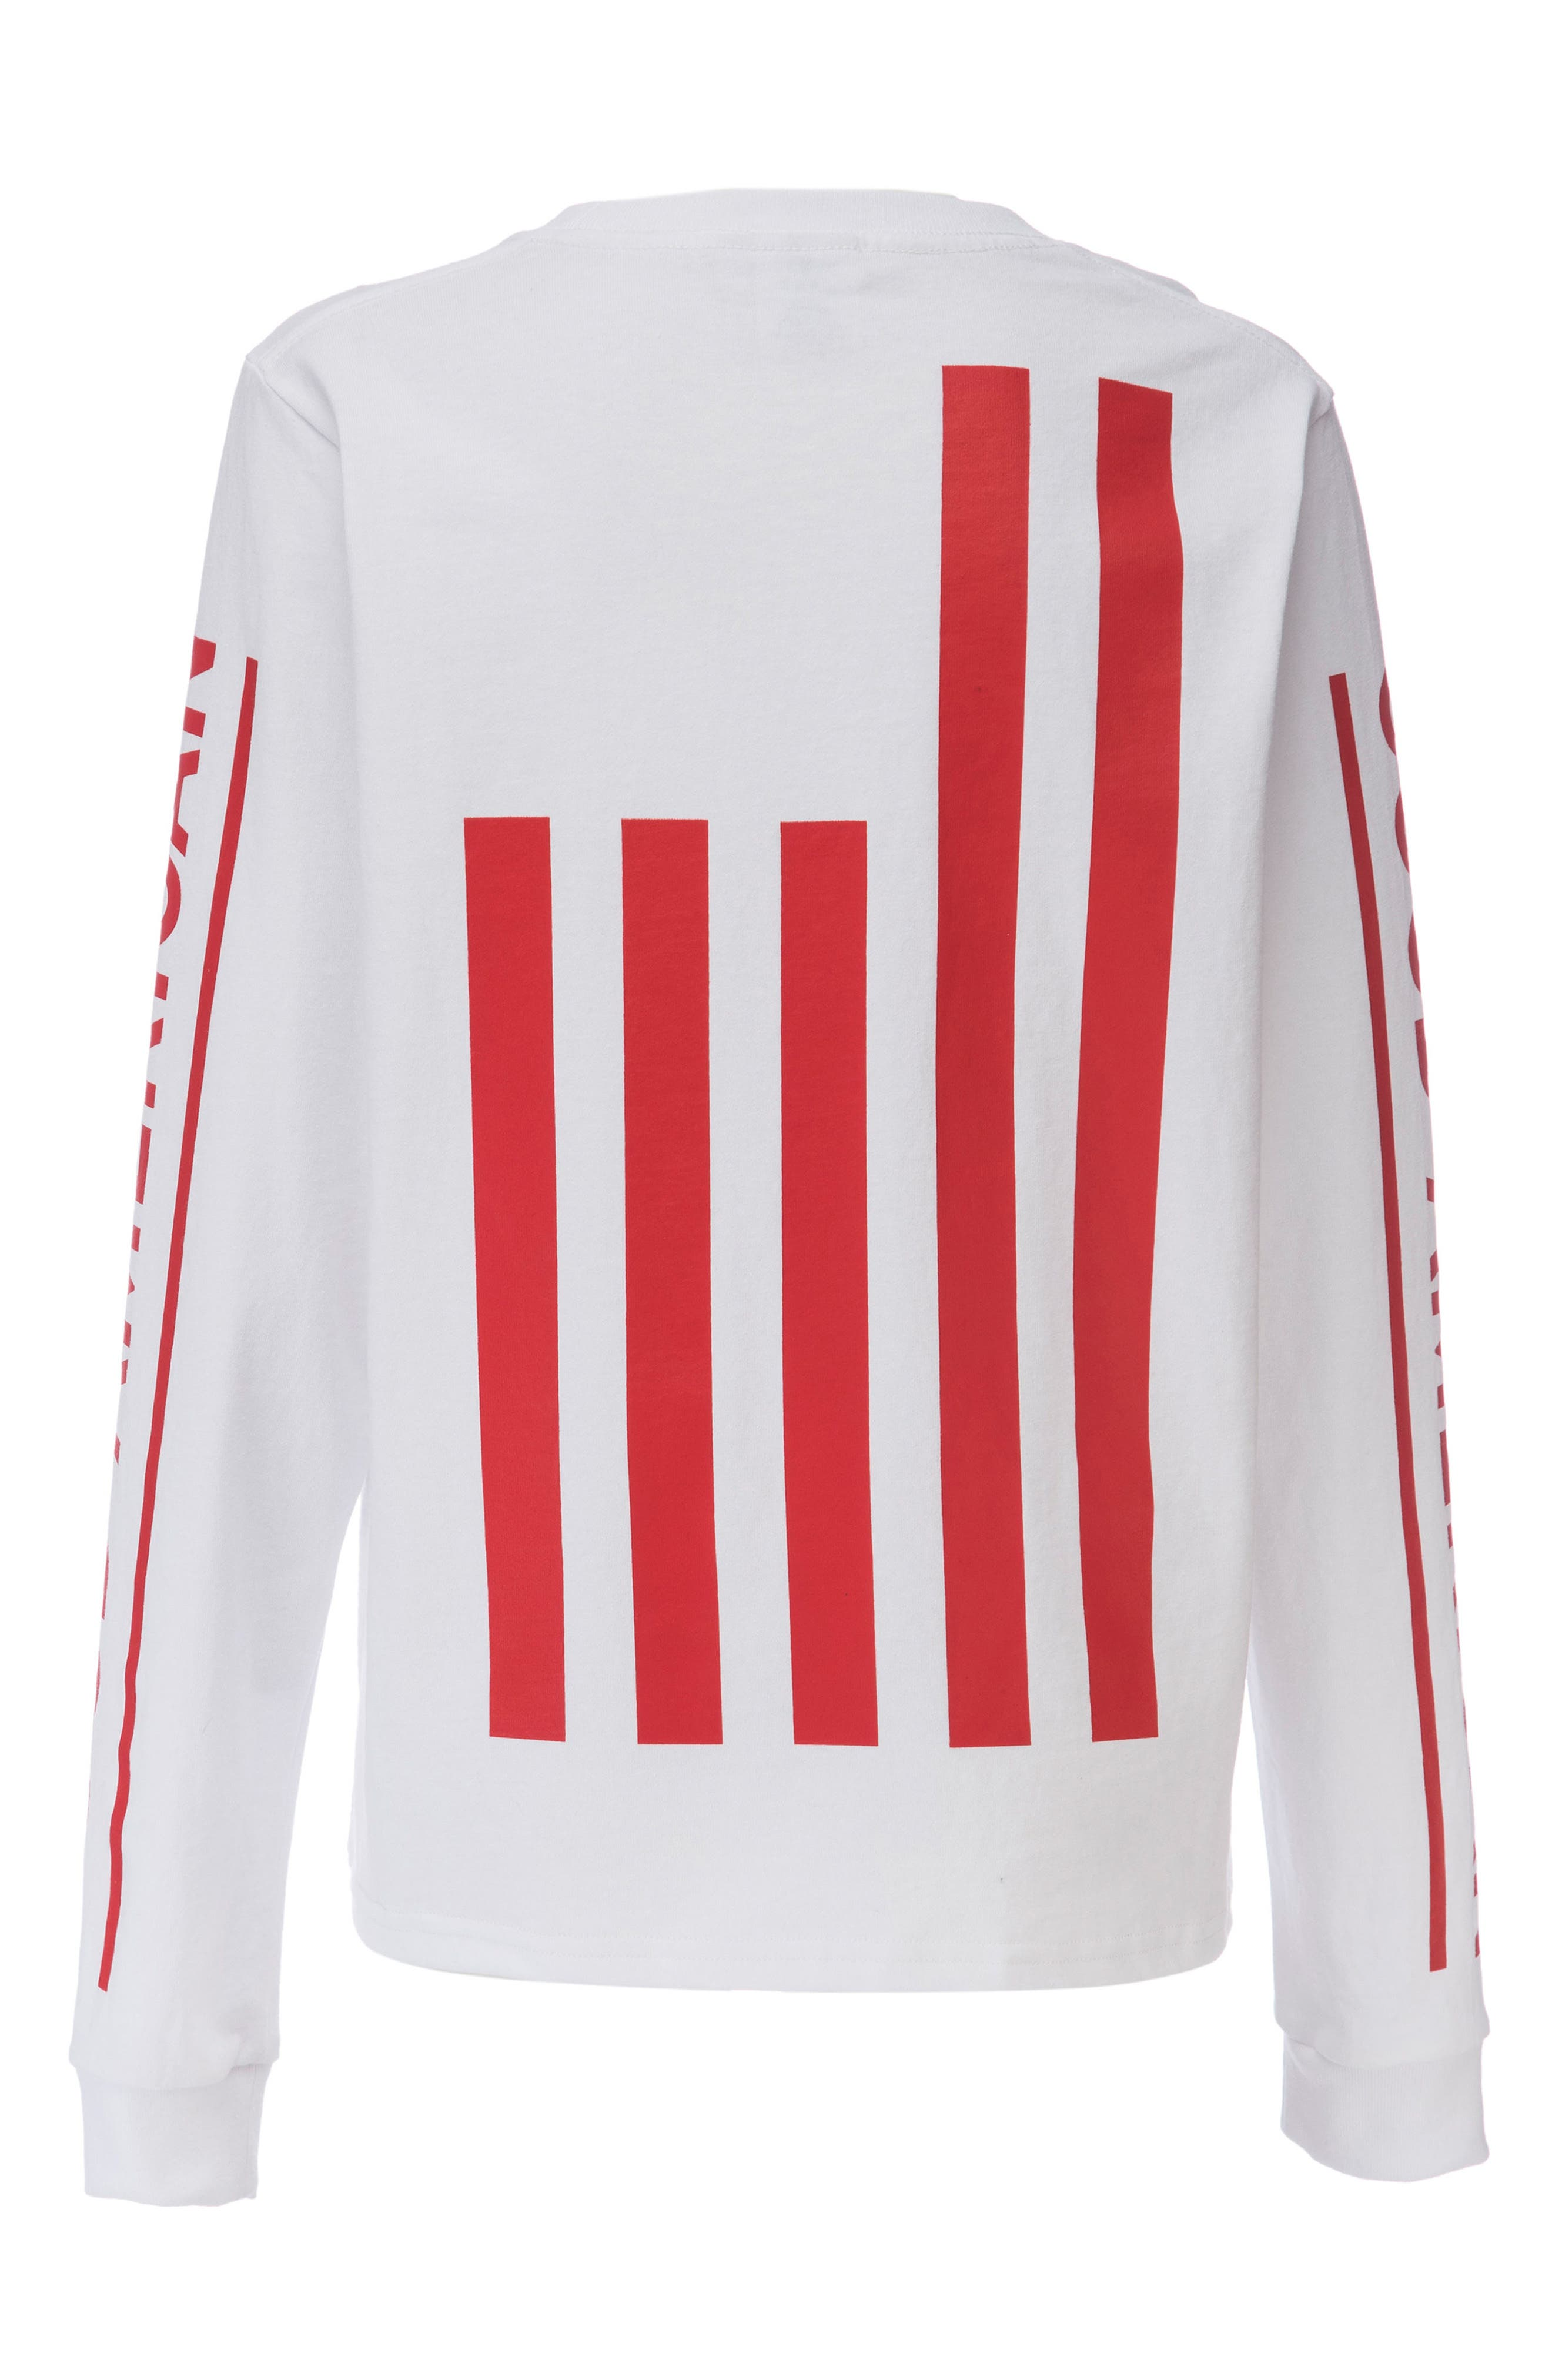 Goodies Graphic Long Sleeve Tee,                             Alternate thumbnail 6, color,